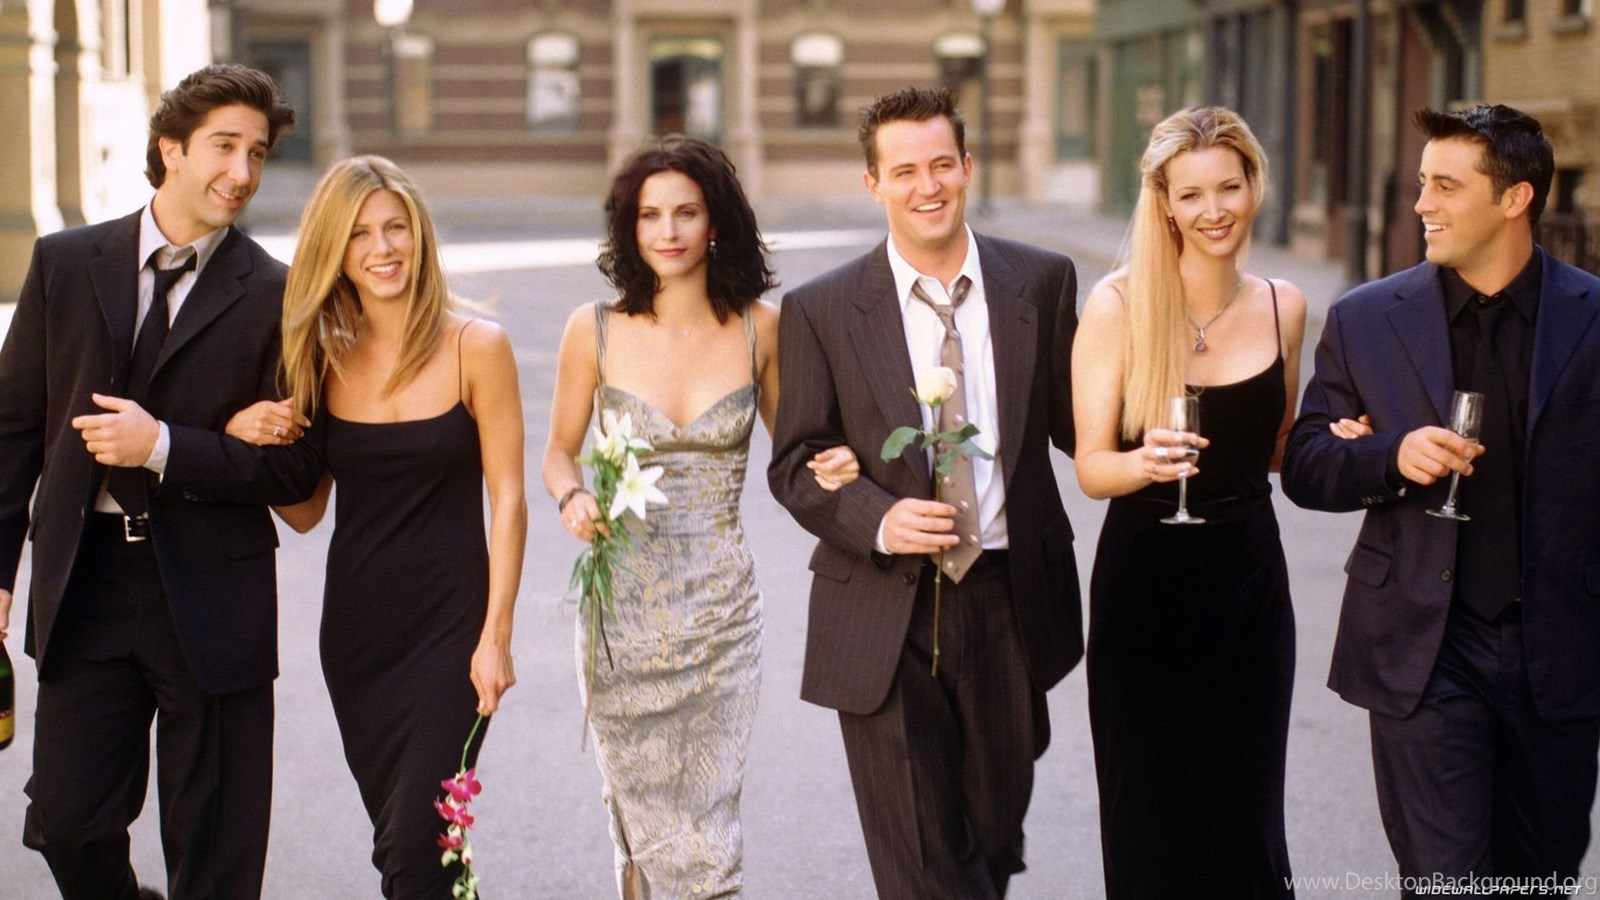 friends tv show wallpapers desktop background